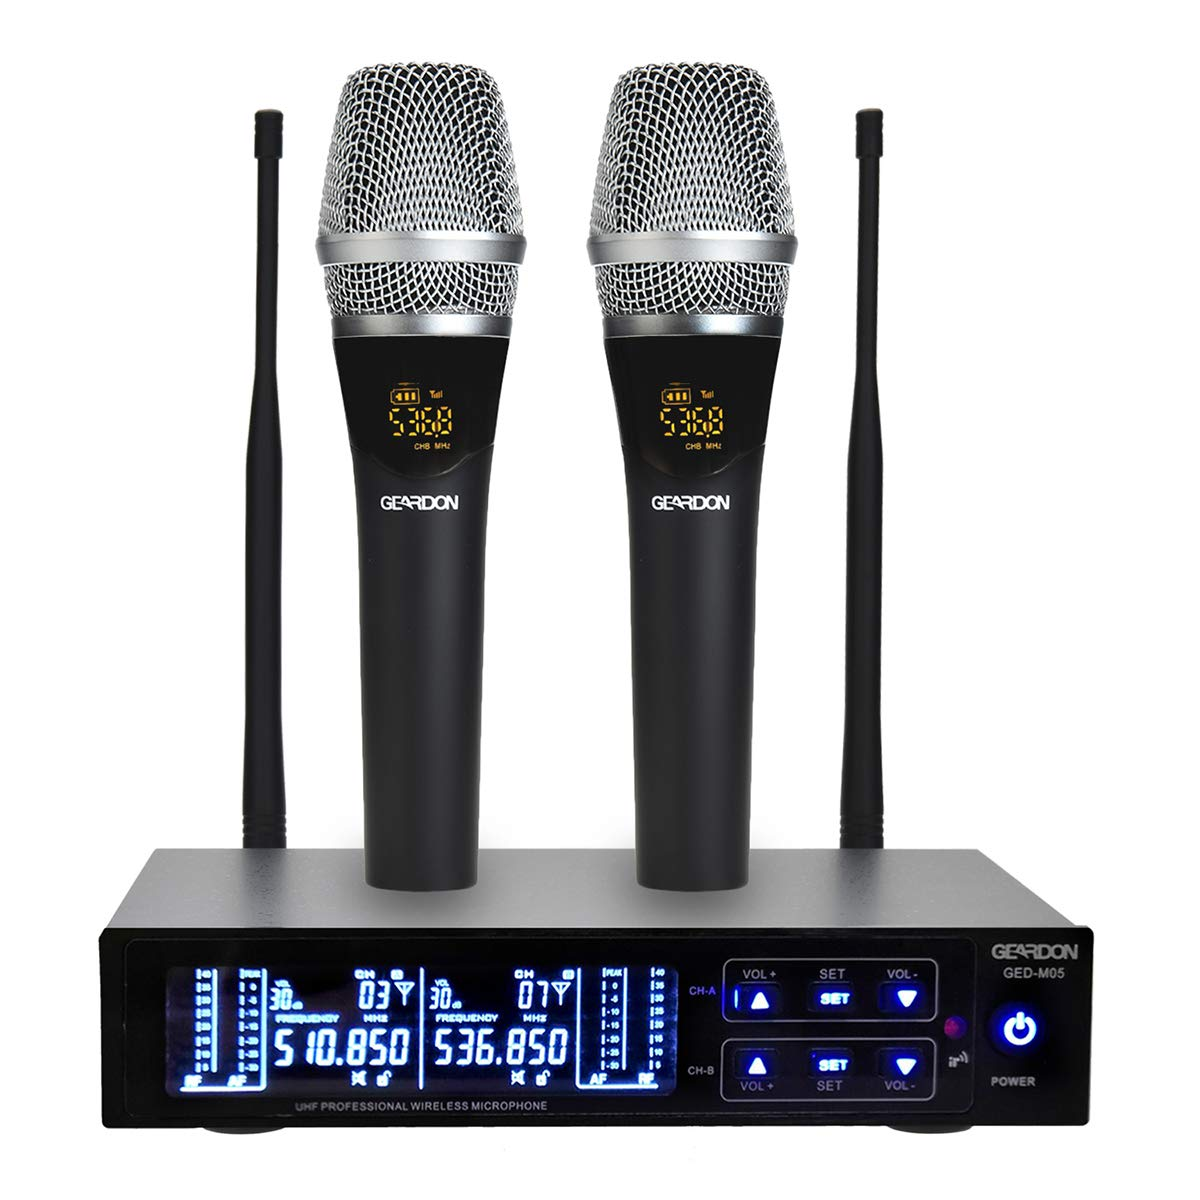 Geardon Pro Rechargeable Dual Wireless Microphone System, 200 Channel UHF Wireless Mic Set with 250ft Long Range Professional Performance, 12hours Battery Continuous Use for Church/Karaoke/DJ by Geardon Pro (Image #1)